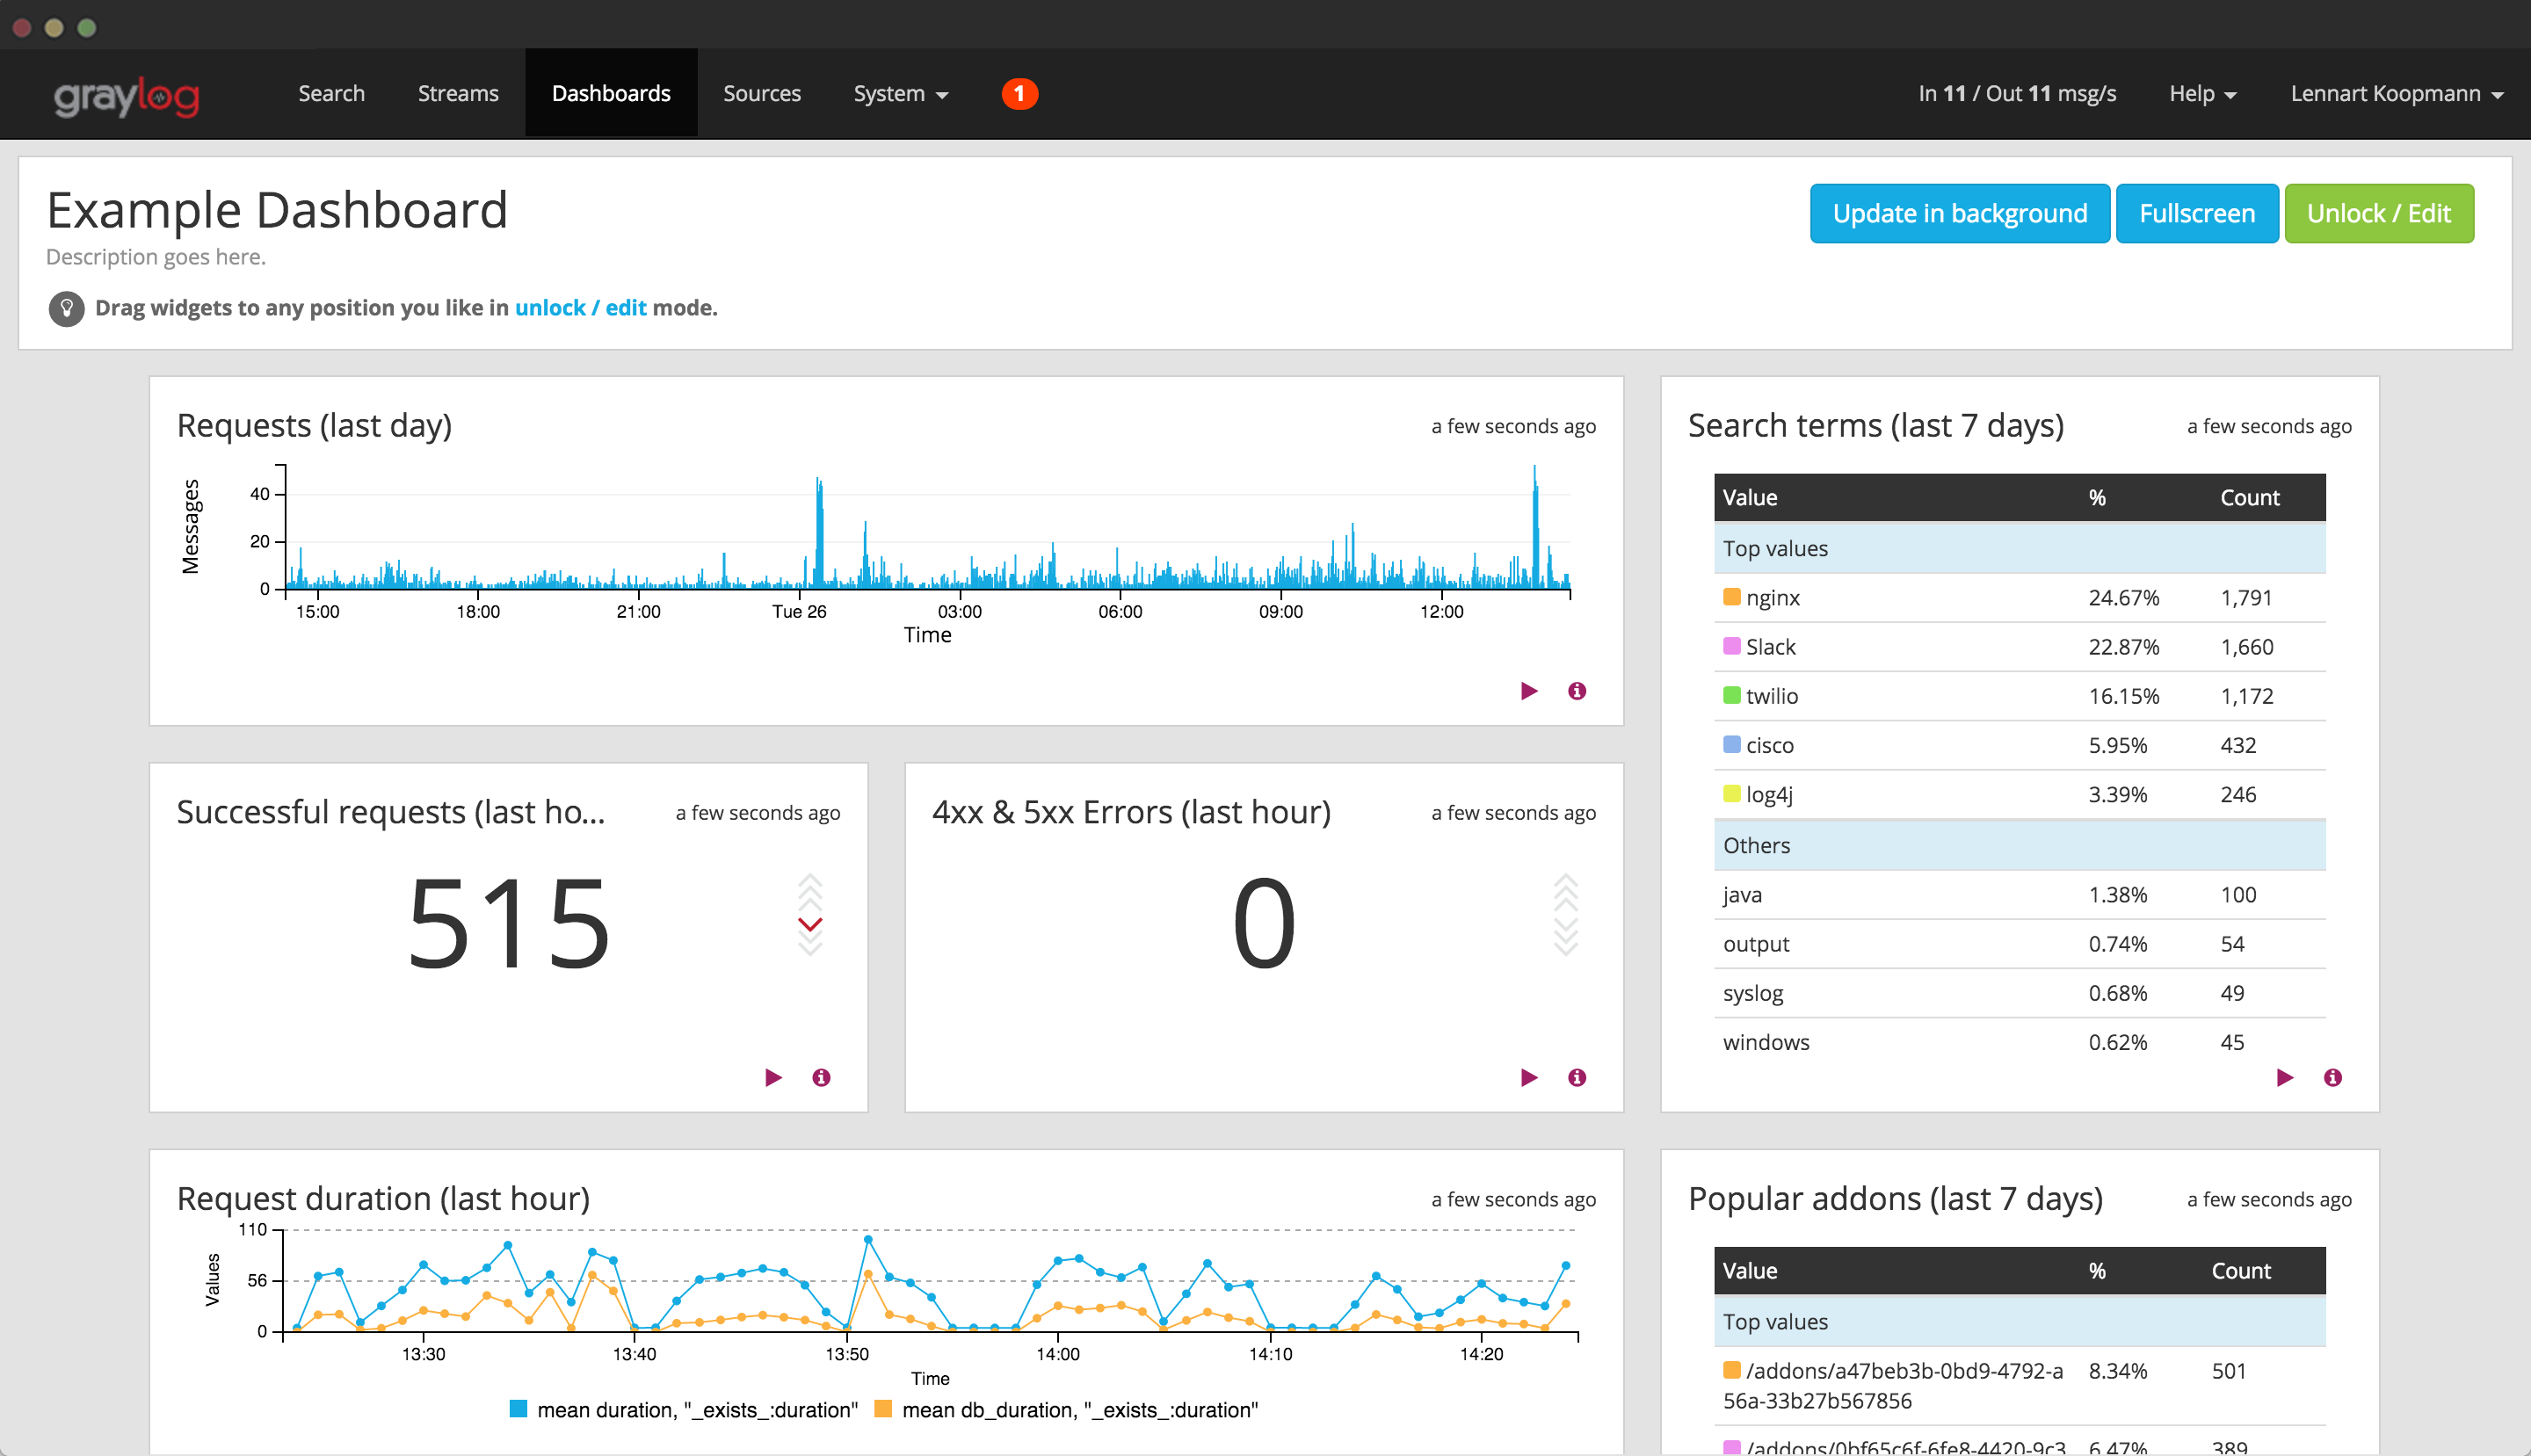 graylog_dashboard_exemple